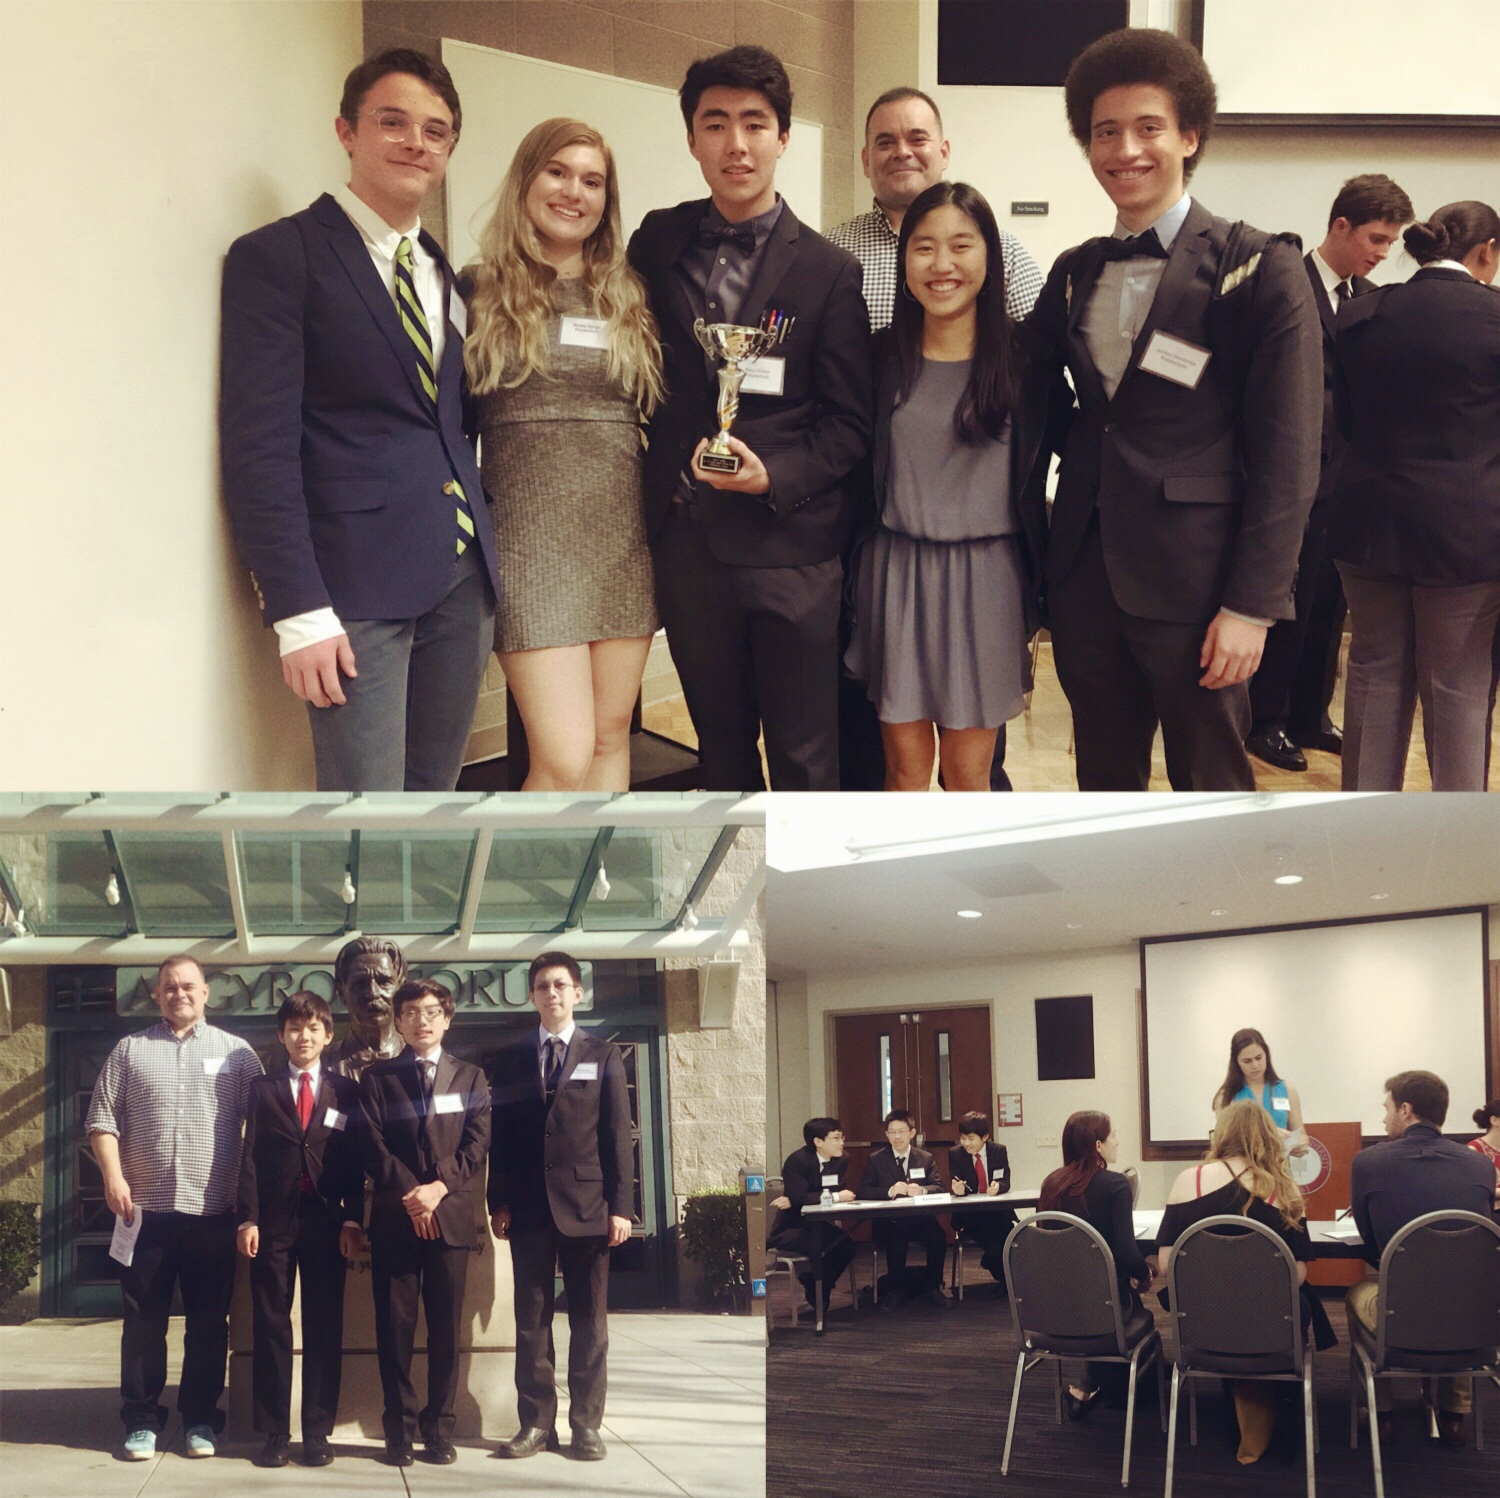 (Feb. 2018)  Top Speakers once again!  Congratulations to our teams from Polytechnic and Northwood high schools! At their first time competing at the regional championships of the High School Ethics Bowl at Chapman University, they were top teams at the event.  Polytechnic was undefeated in their preliminary rounds.  They won 1st place for best commentary  (top speakers) and 3rd place overall. Northwood had a nearly perfect record, losing only one preliminary round.  This is a truly amazing result because our teams were younger than every other team. Most teams were in the 12th grade. Our Polytechnic team is a team of sophomores. And our Northwood team was the only freshman team at the Ethics Bowl. They were also the smallest team, with only three students. Most other teams were 7 people.  We love to encourage our students to challenge themselves. The Ethics Bowl requires students to be able to think deeply about moral problems and to work together to find a solution. The judges are Philosophy professors at Universities. So, every student has to take care to be precise and to explain themselves at a college level of analysis.